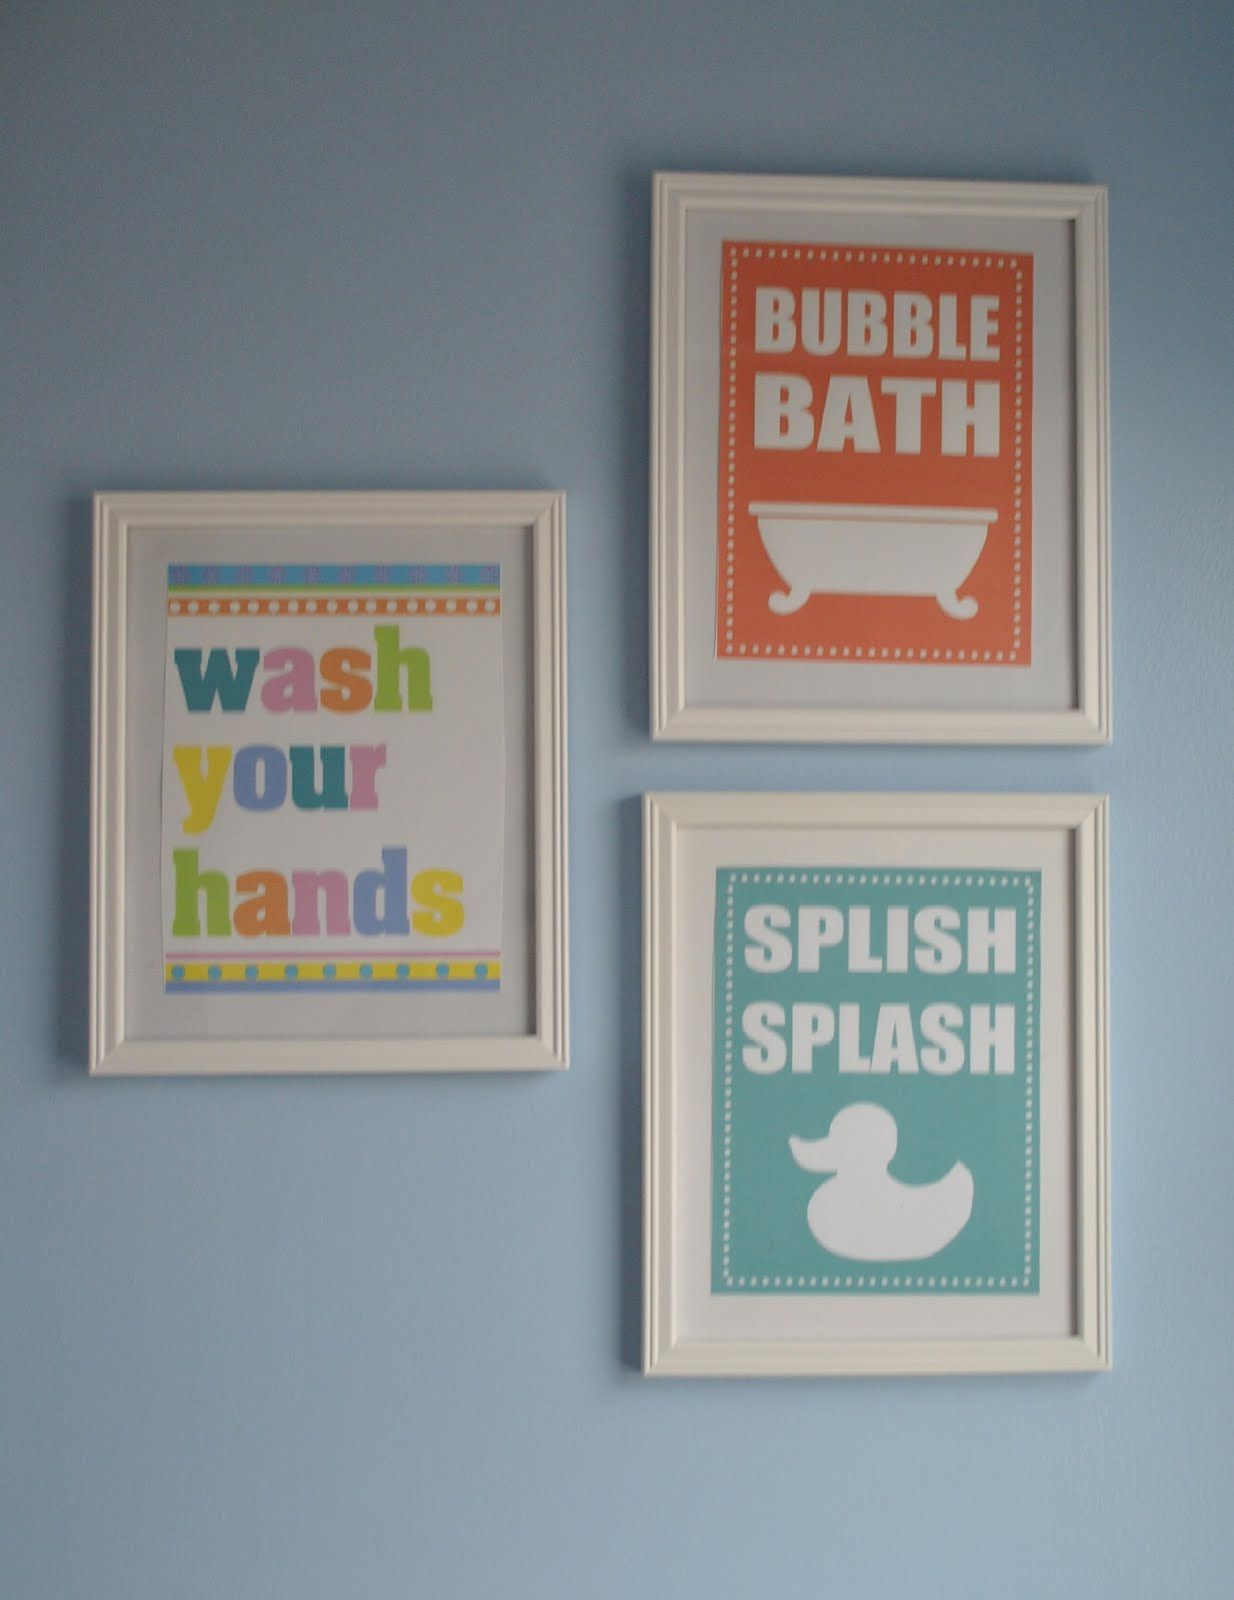 Bathroom wall art for kids - Simple Vinyl Wall Art For Bathrooms With Write And Picture With Frame Cling On Blue Wall Bathroom Wall Art Decals Kids Bathroom Wall Art